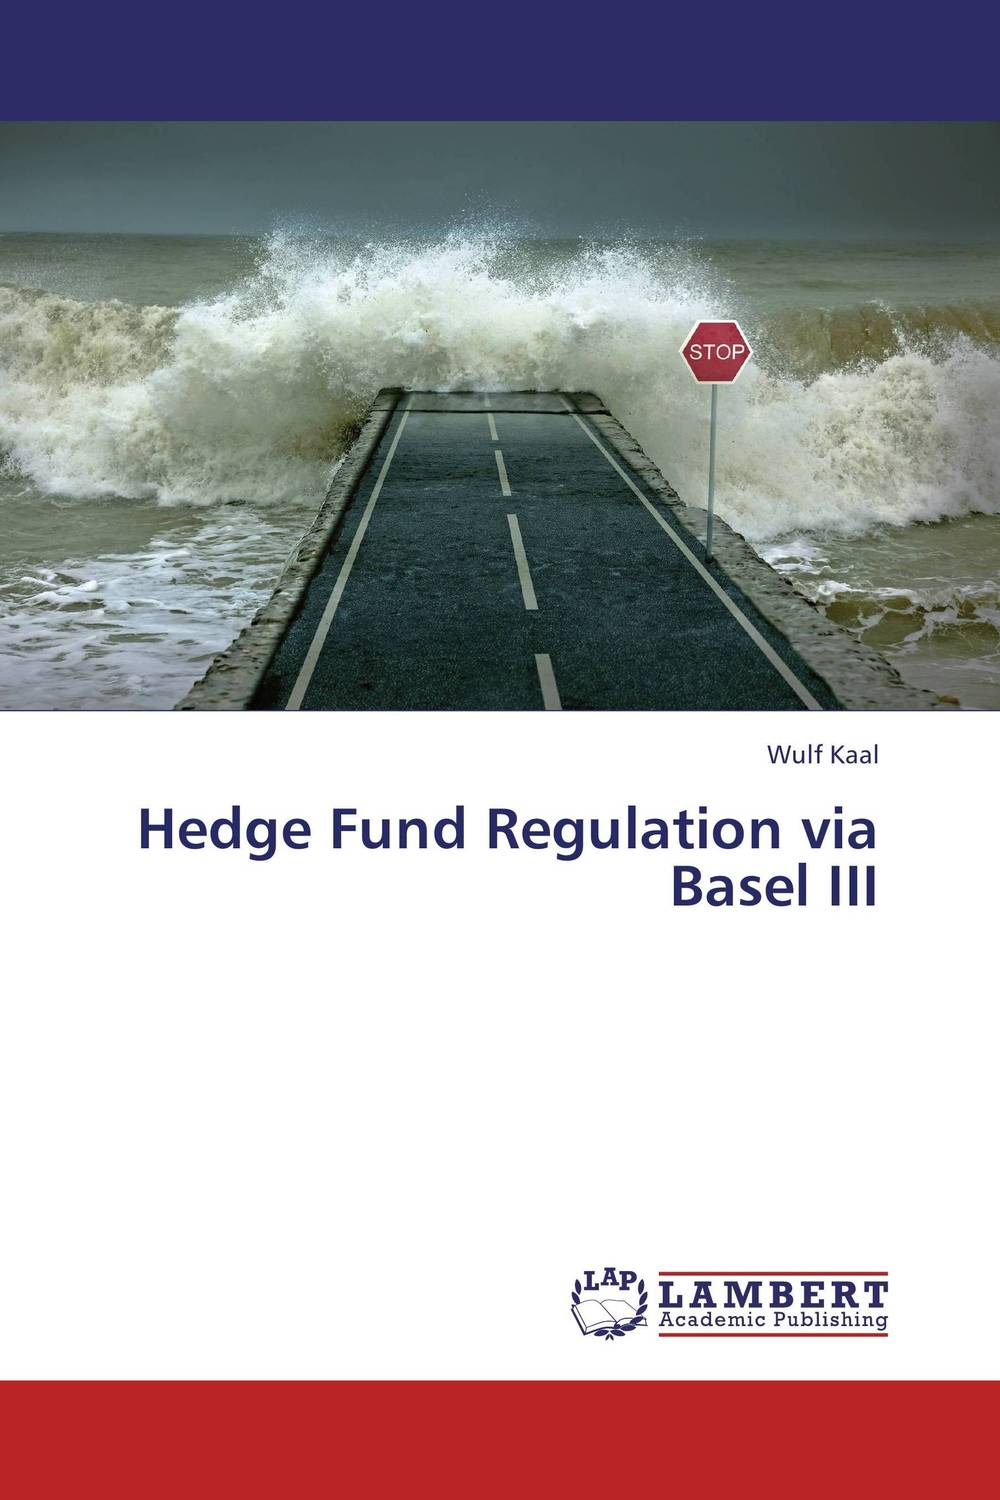 Hedge Fund Regulation via Basel III wendy patton making hard cash in a soft real estate market find the next high growth emerging markets buy new construction at big discounts uncover hidden properties raise private funds when bank lending is tight